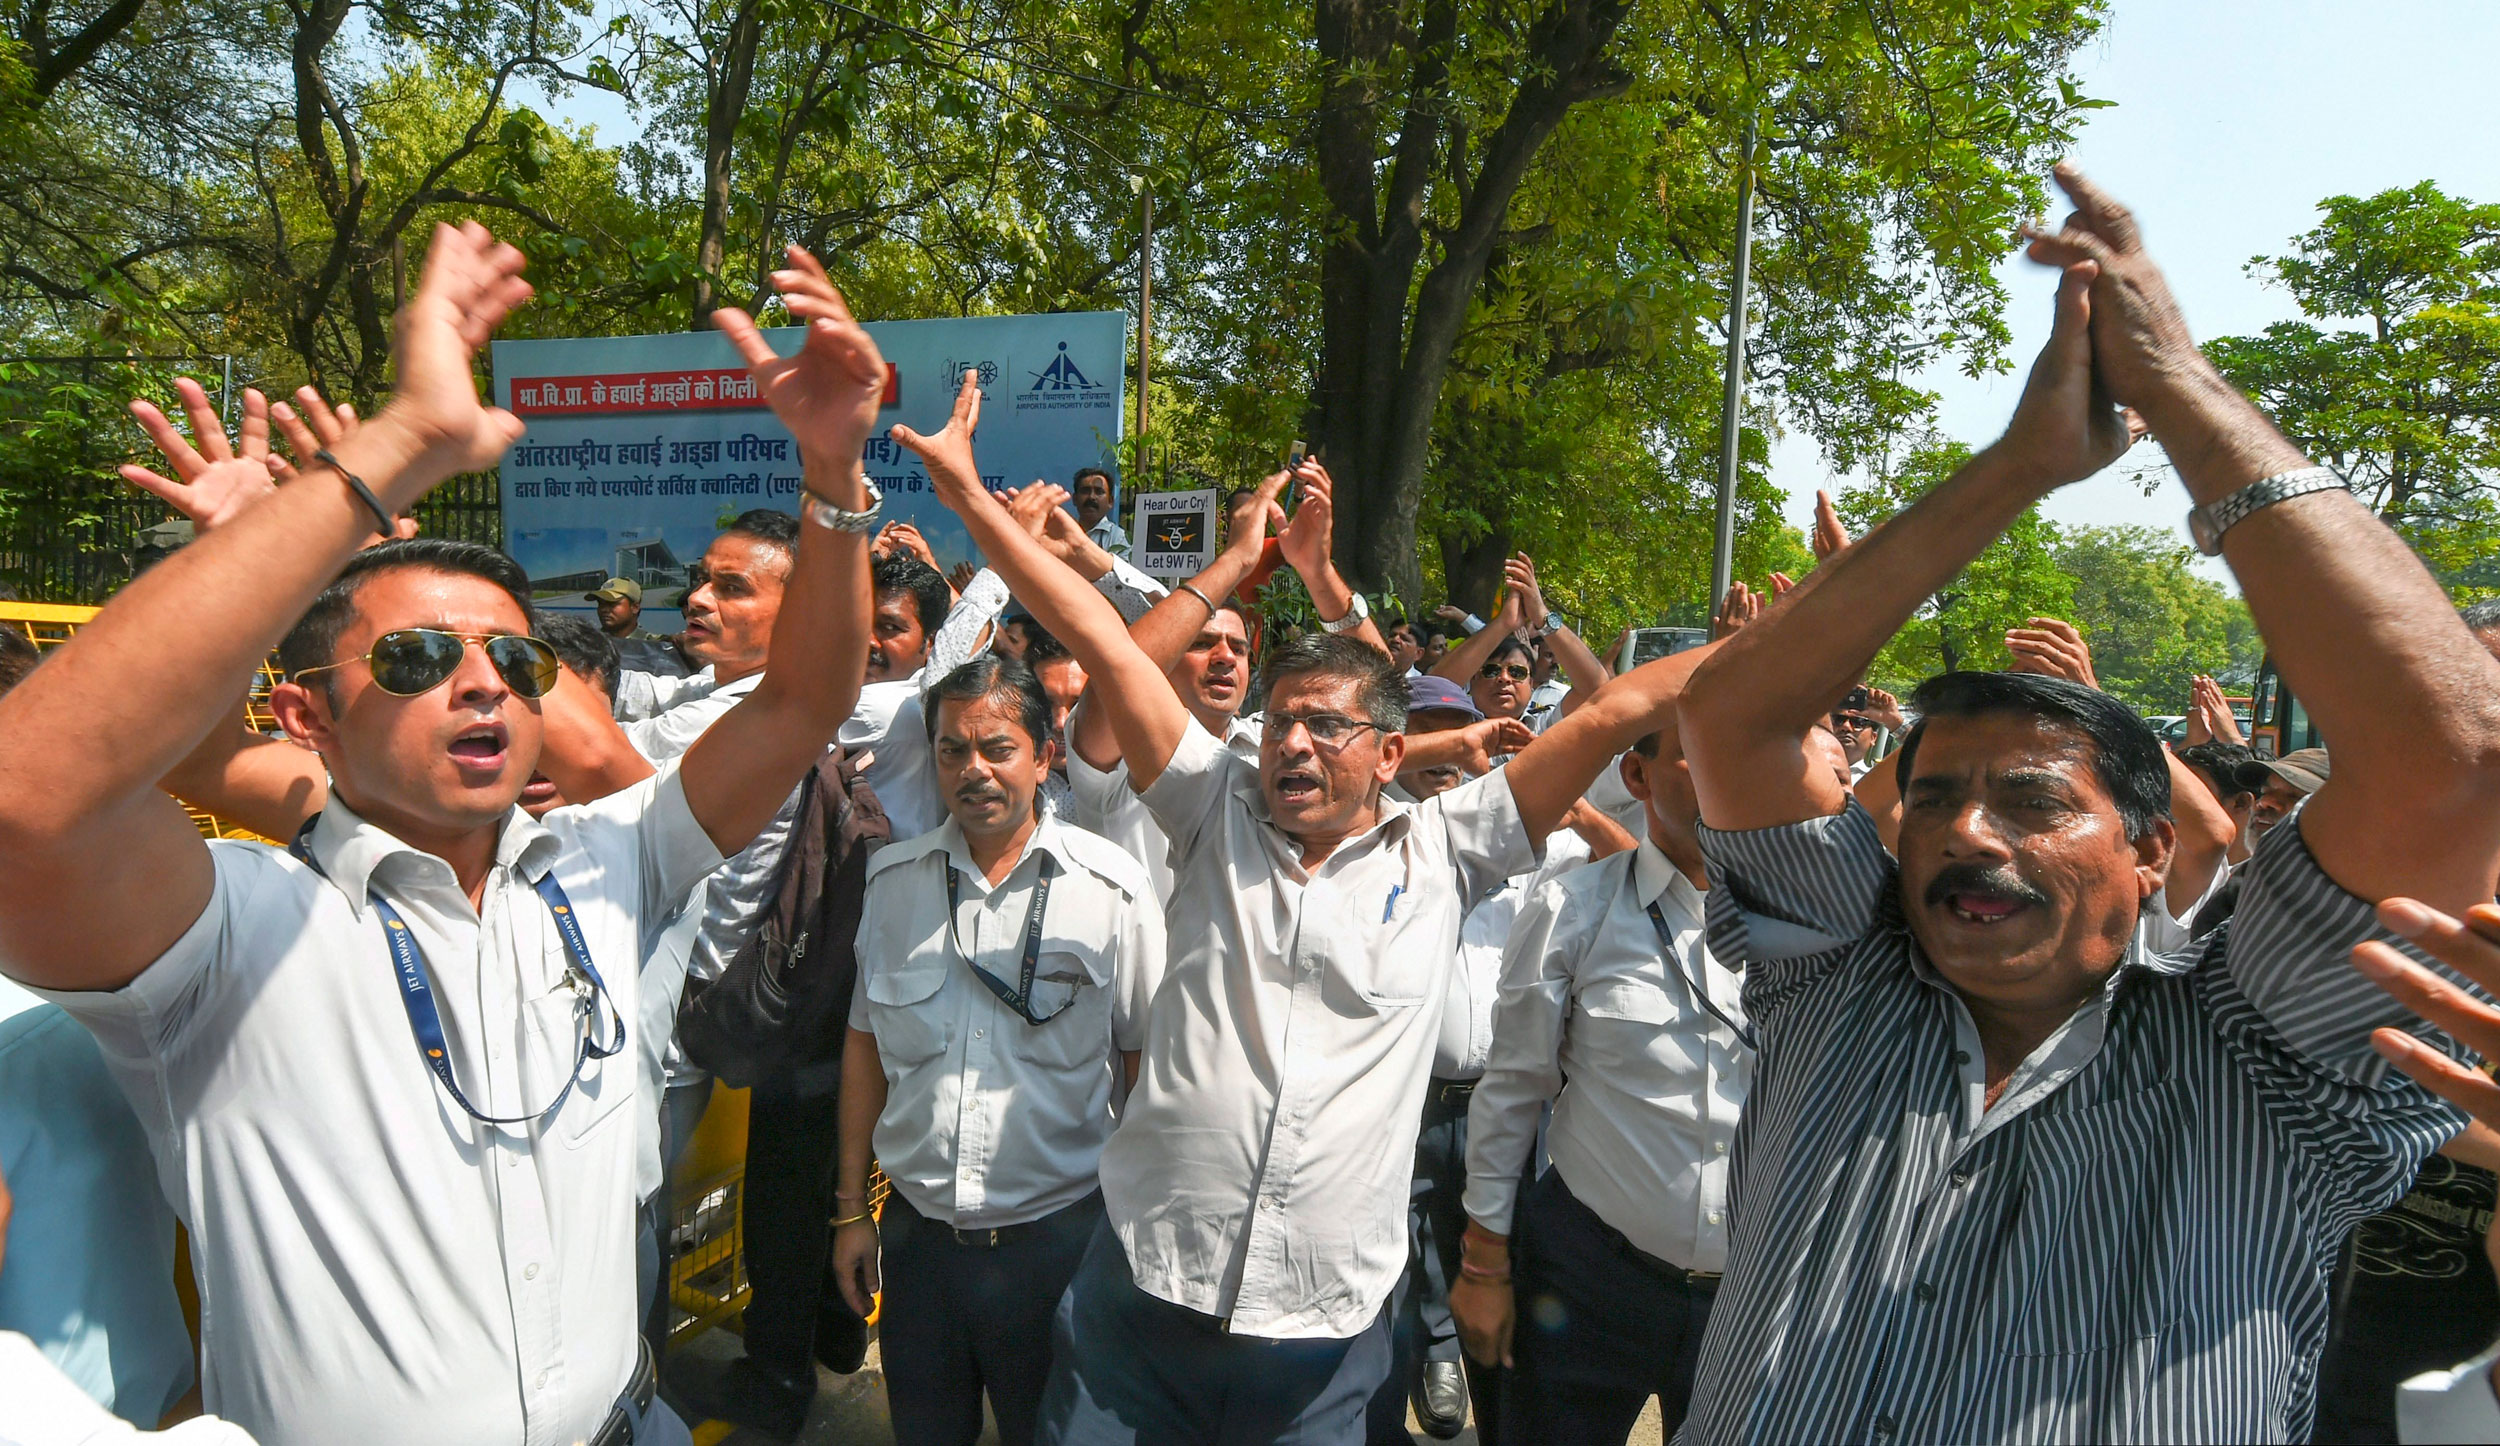 Jet Airways employees protest outside Civil Aviation Ministry, at Rajiv Gandhi Bhawan in New Delhi, on May 21, 2019.